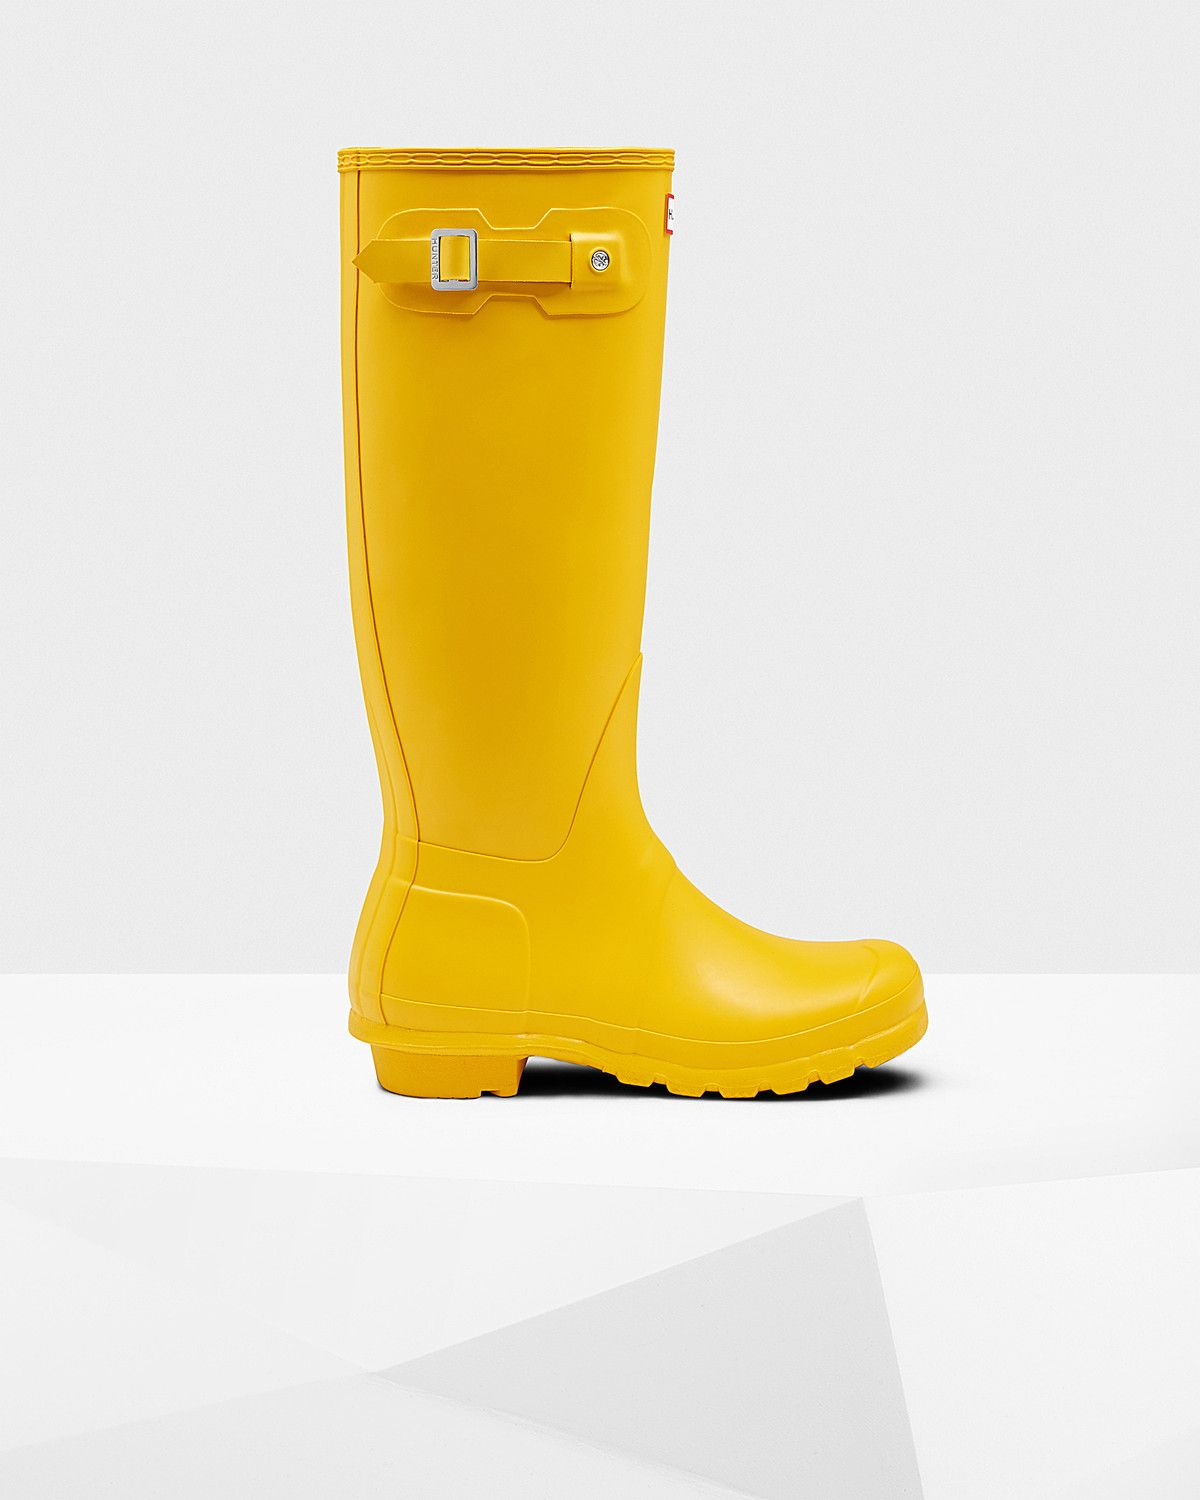 Womens Yellow Tall Rain Boots | Official US Hunter Boots Store